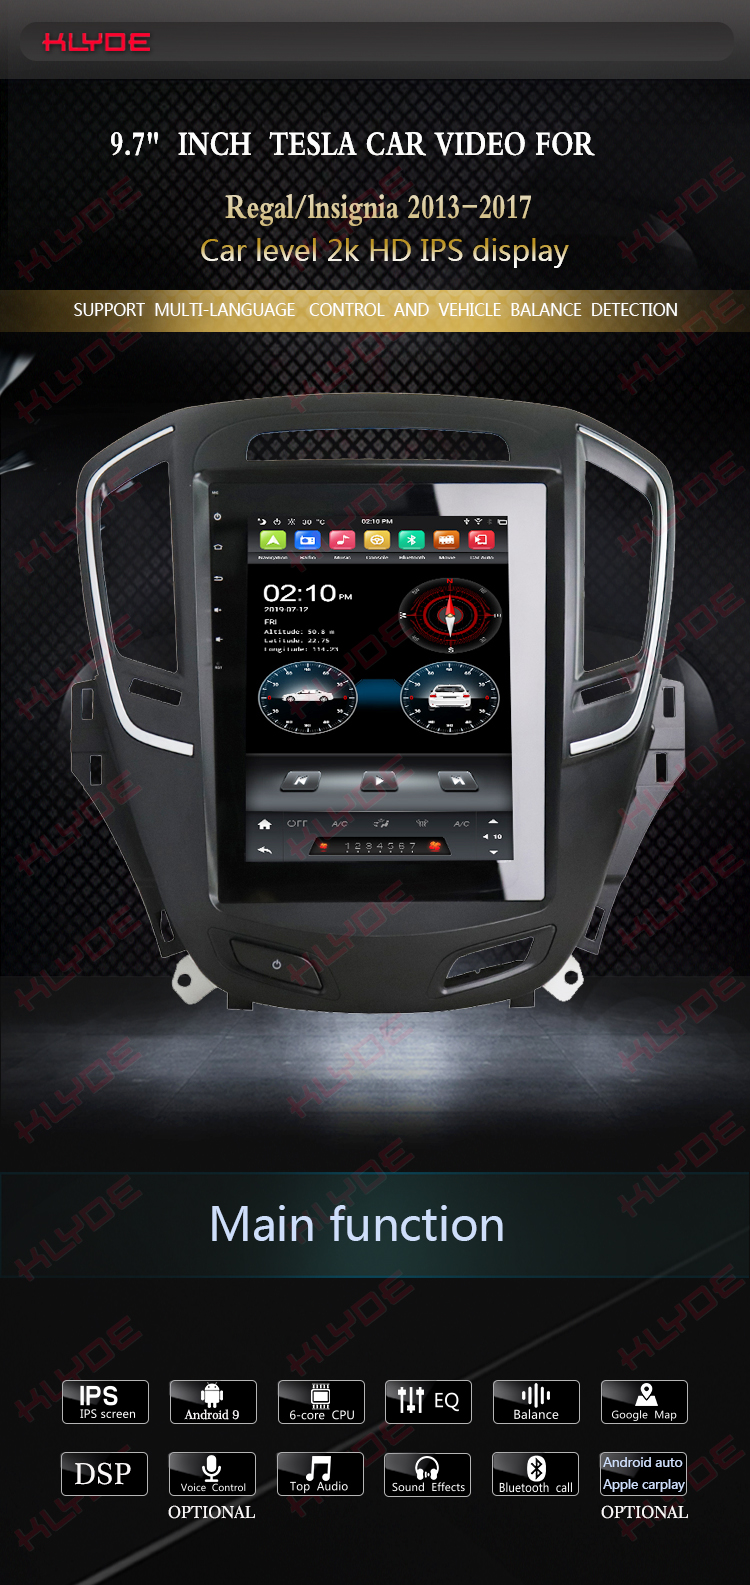 android radio for Opel Regal/lnsignia 2017